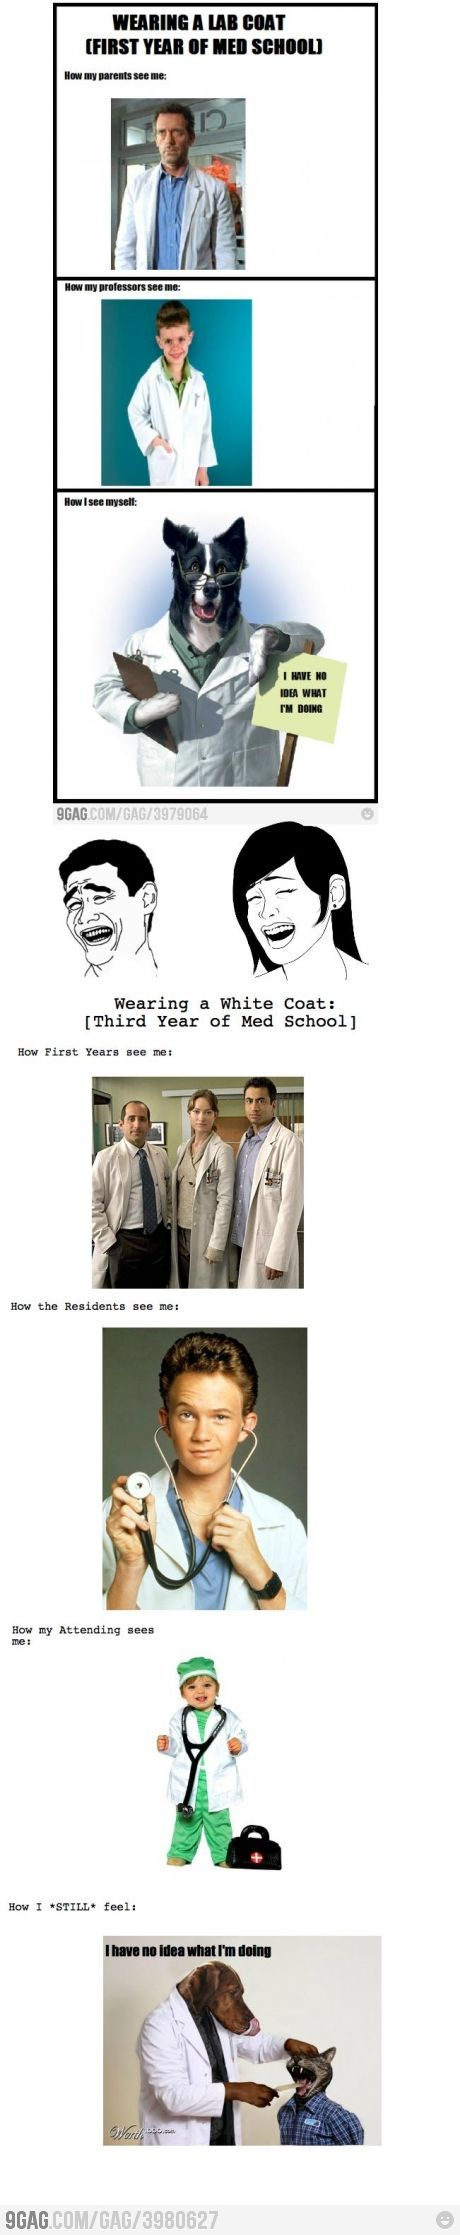 How others see me as a med student.